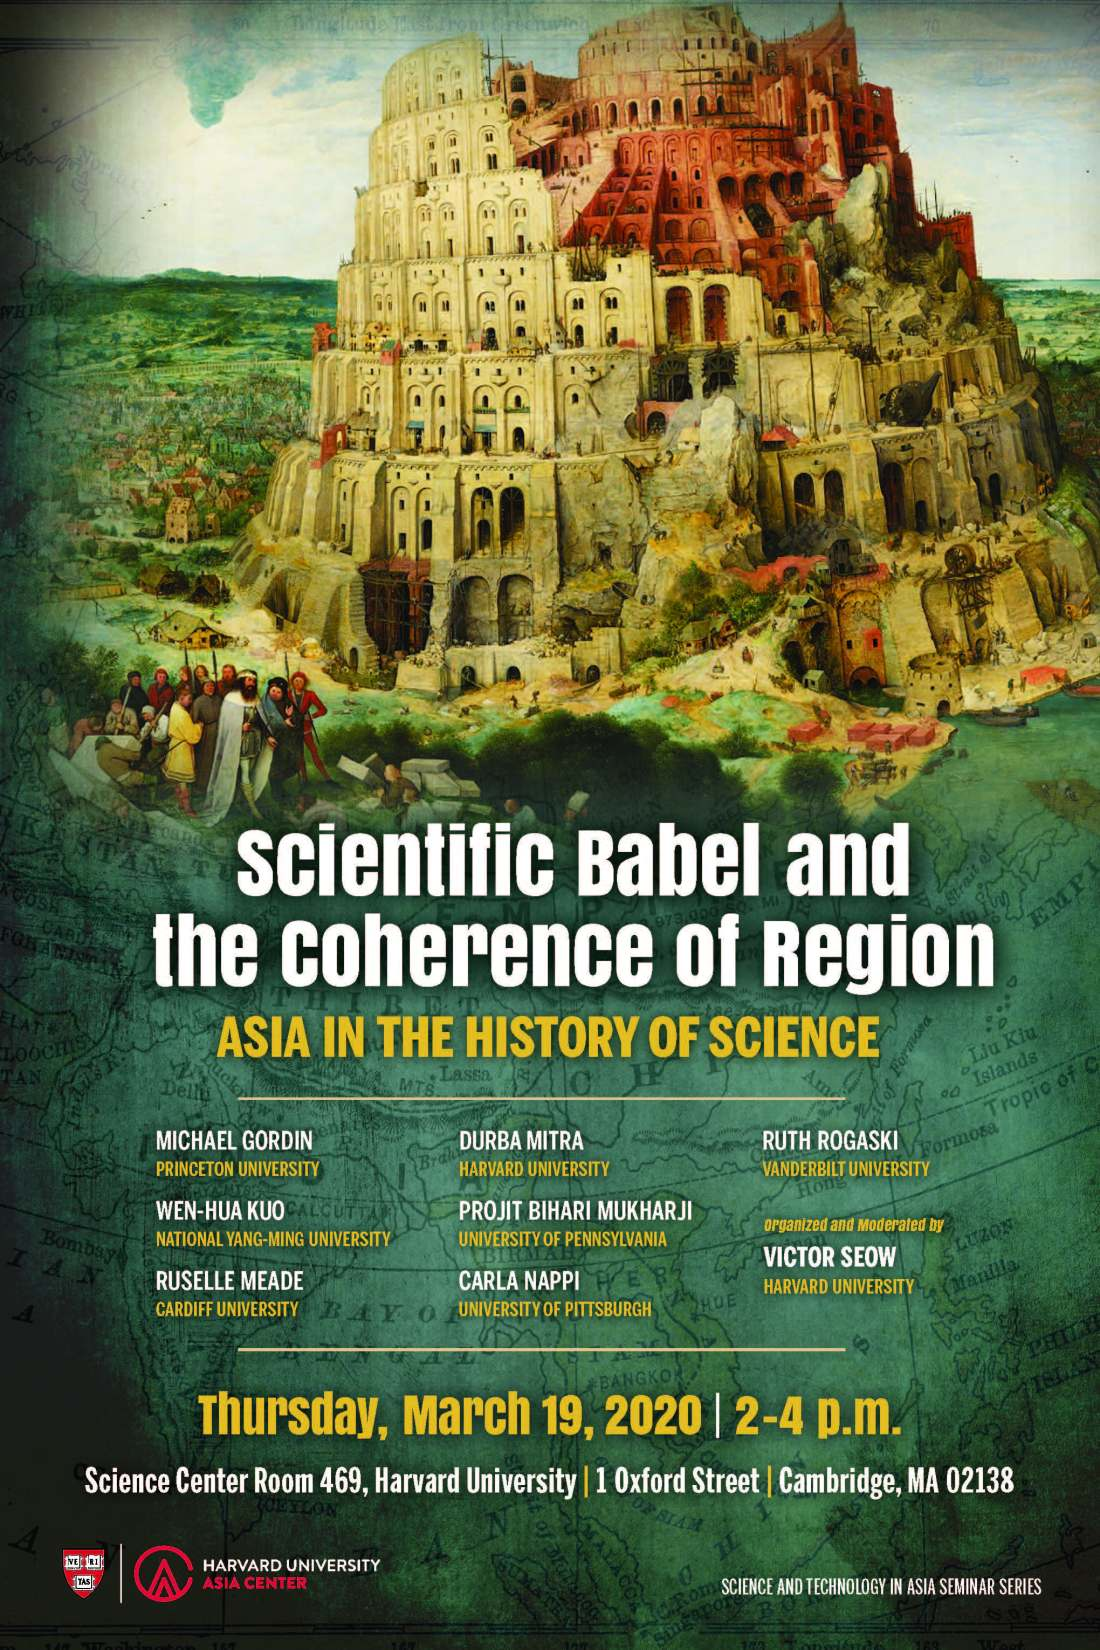 Scientific Babel and the Coherence of Region